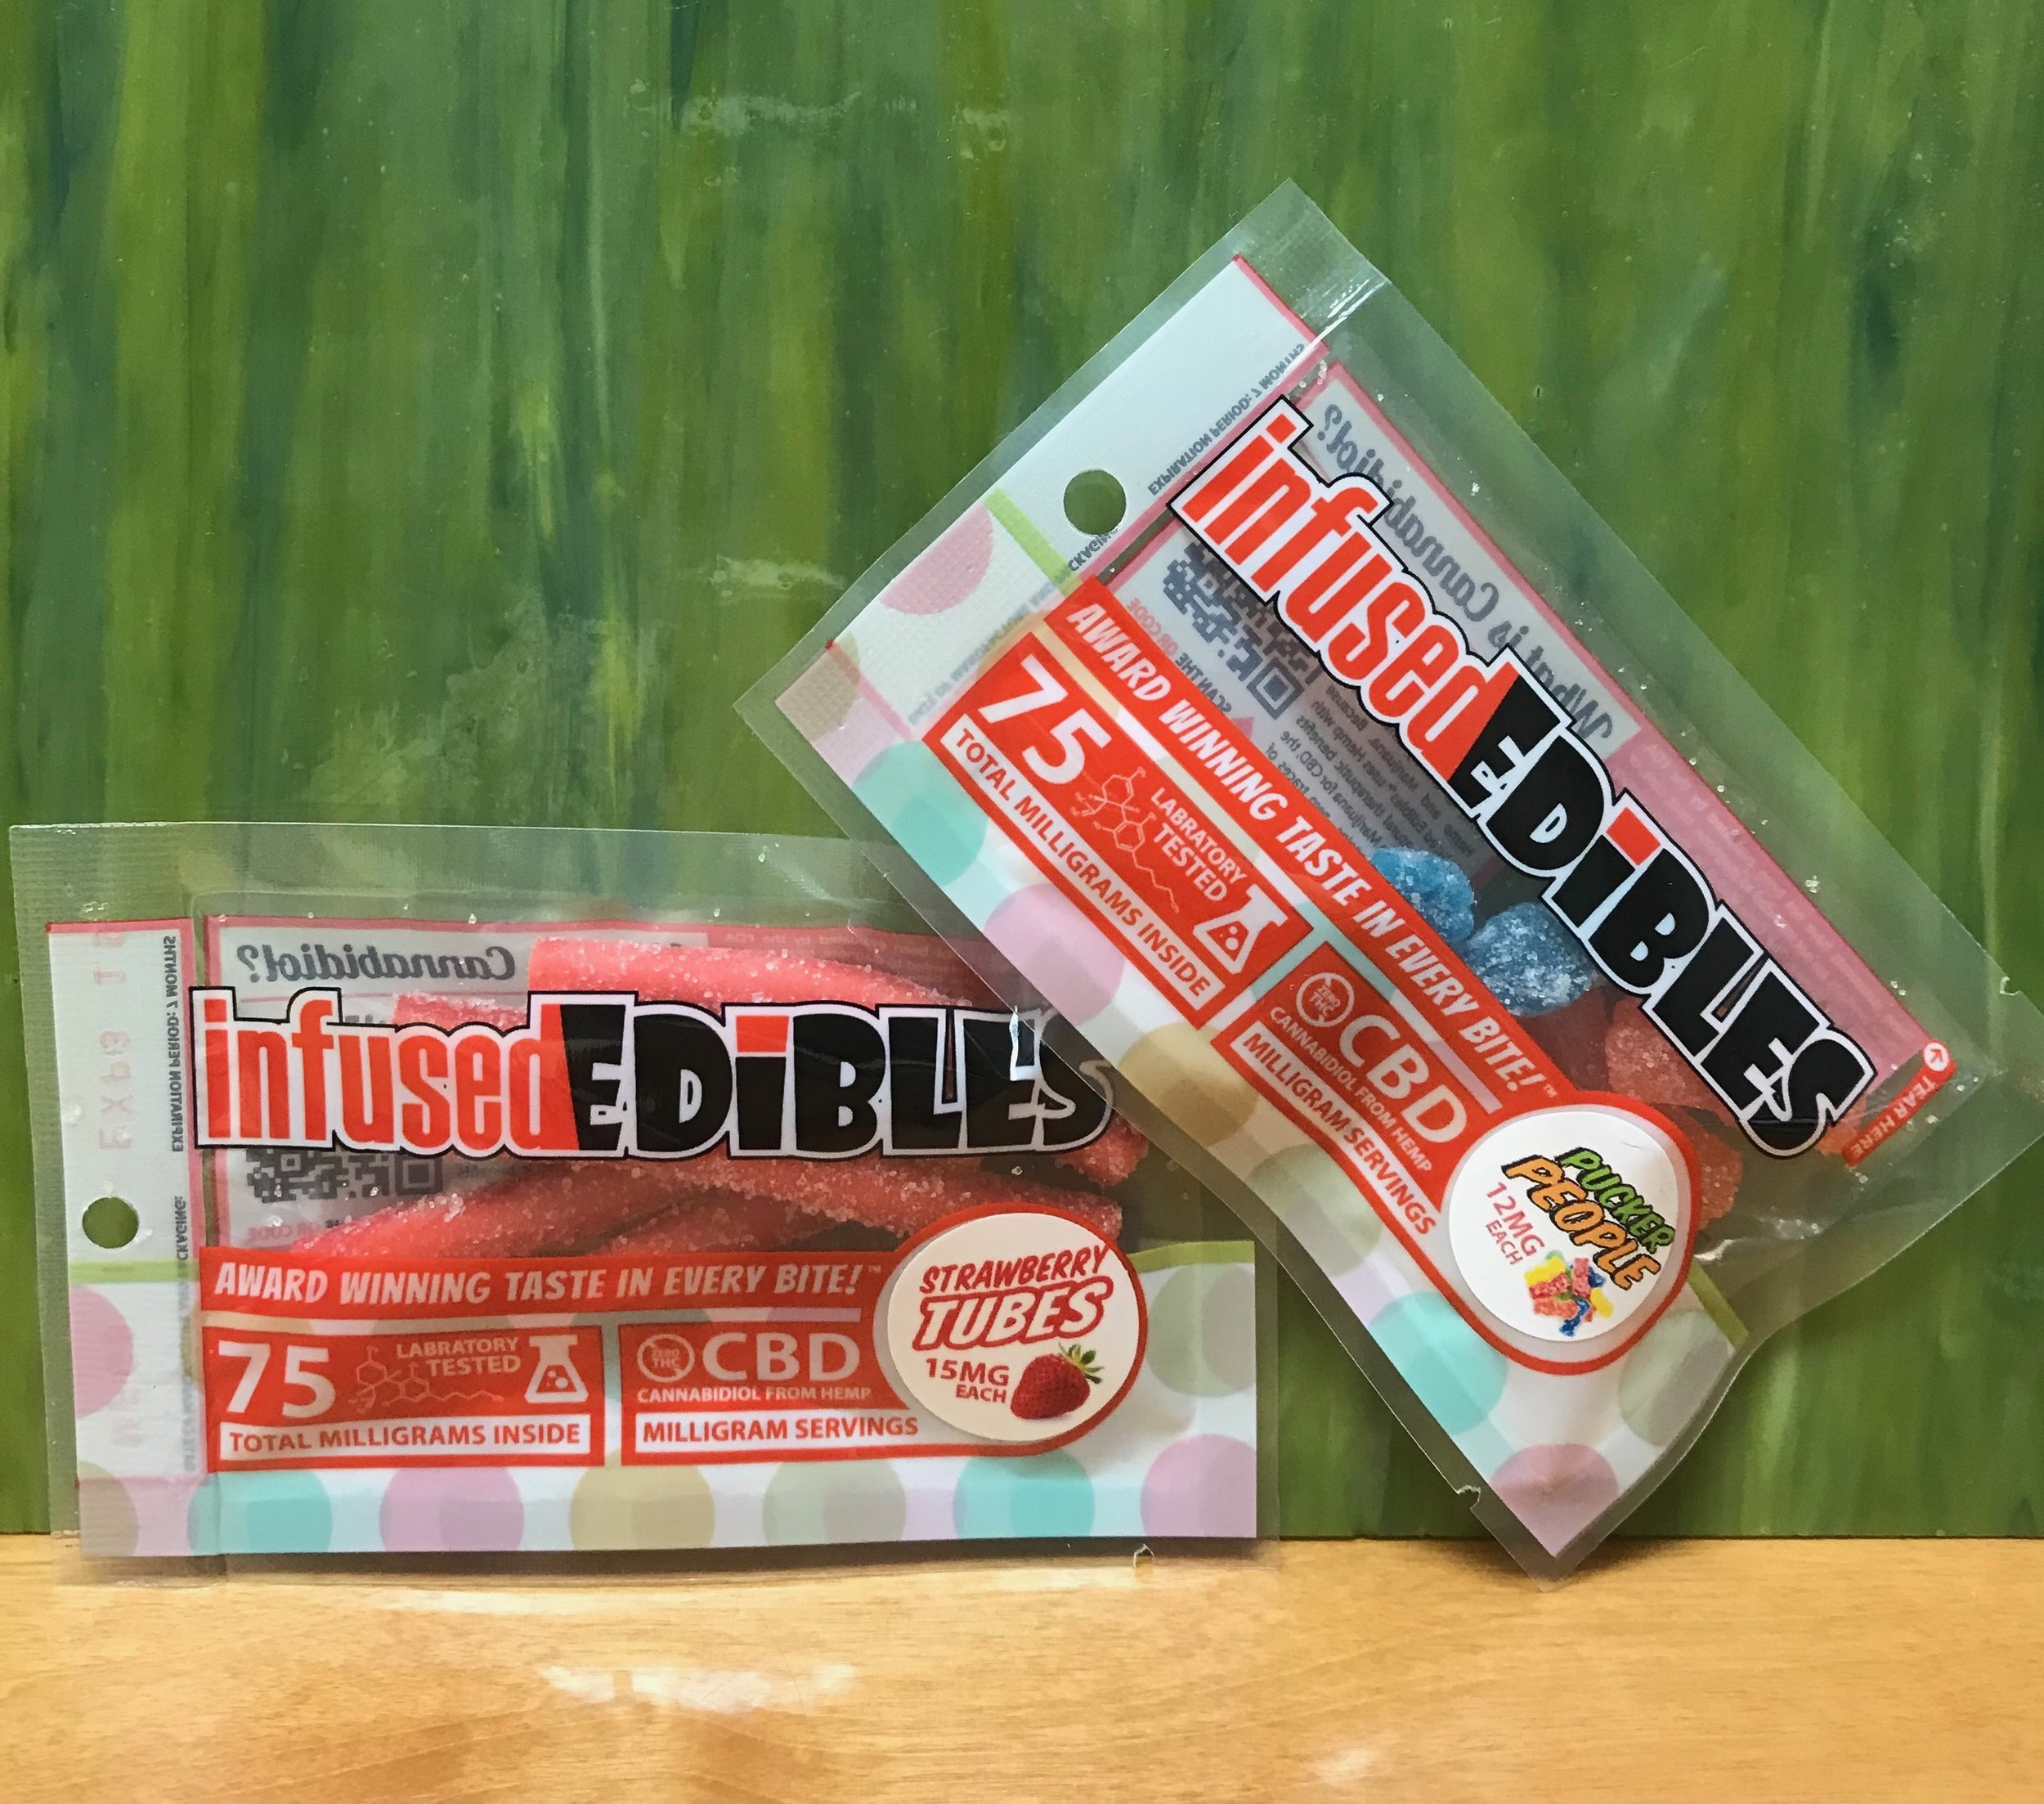 infused EDIBLES 75mg/bag (thc free) - $14.99